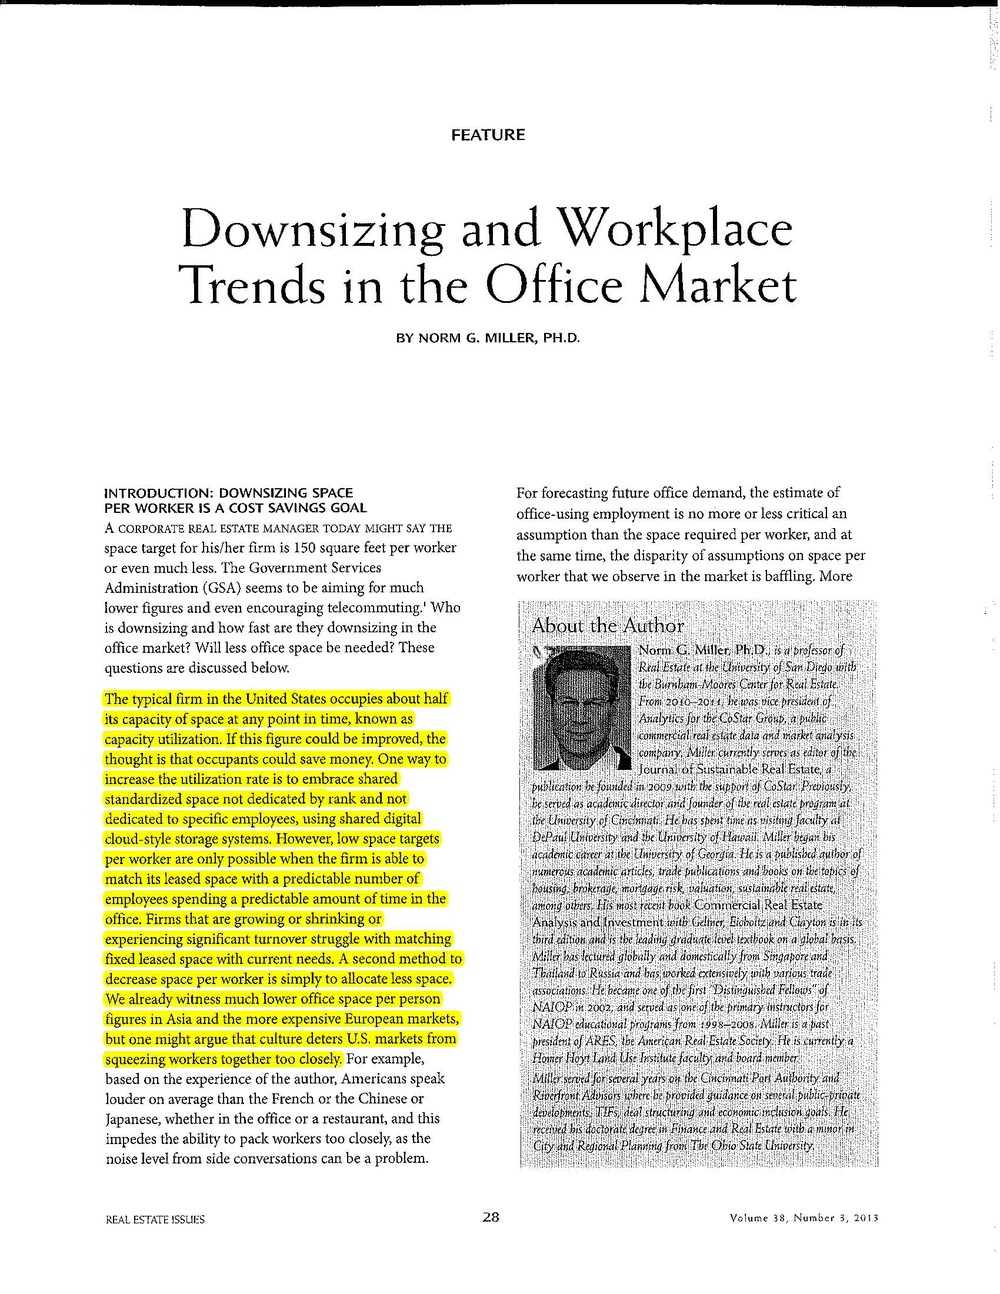 Downsizing and Workplace Trends in the Office Market_Page_1 3